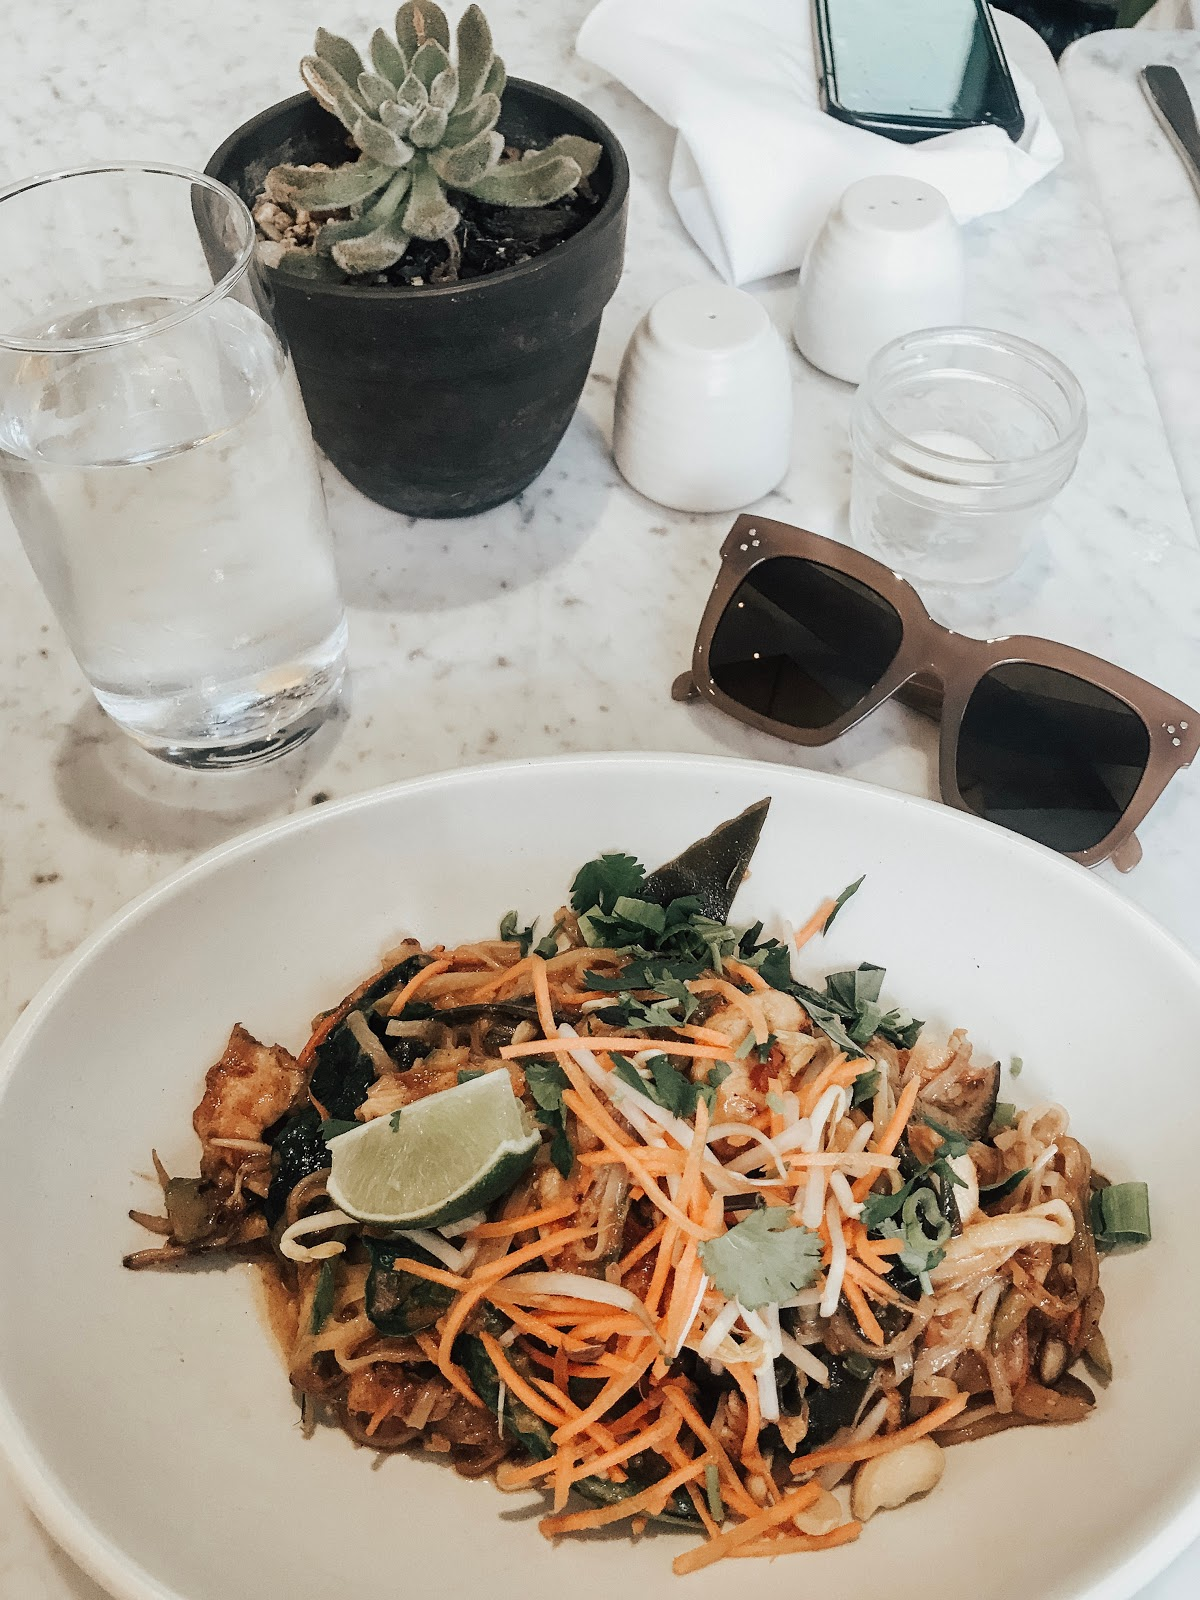 Gluten free cashew Pad Thai at True Food Kitchen